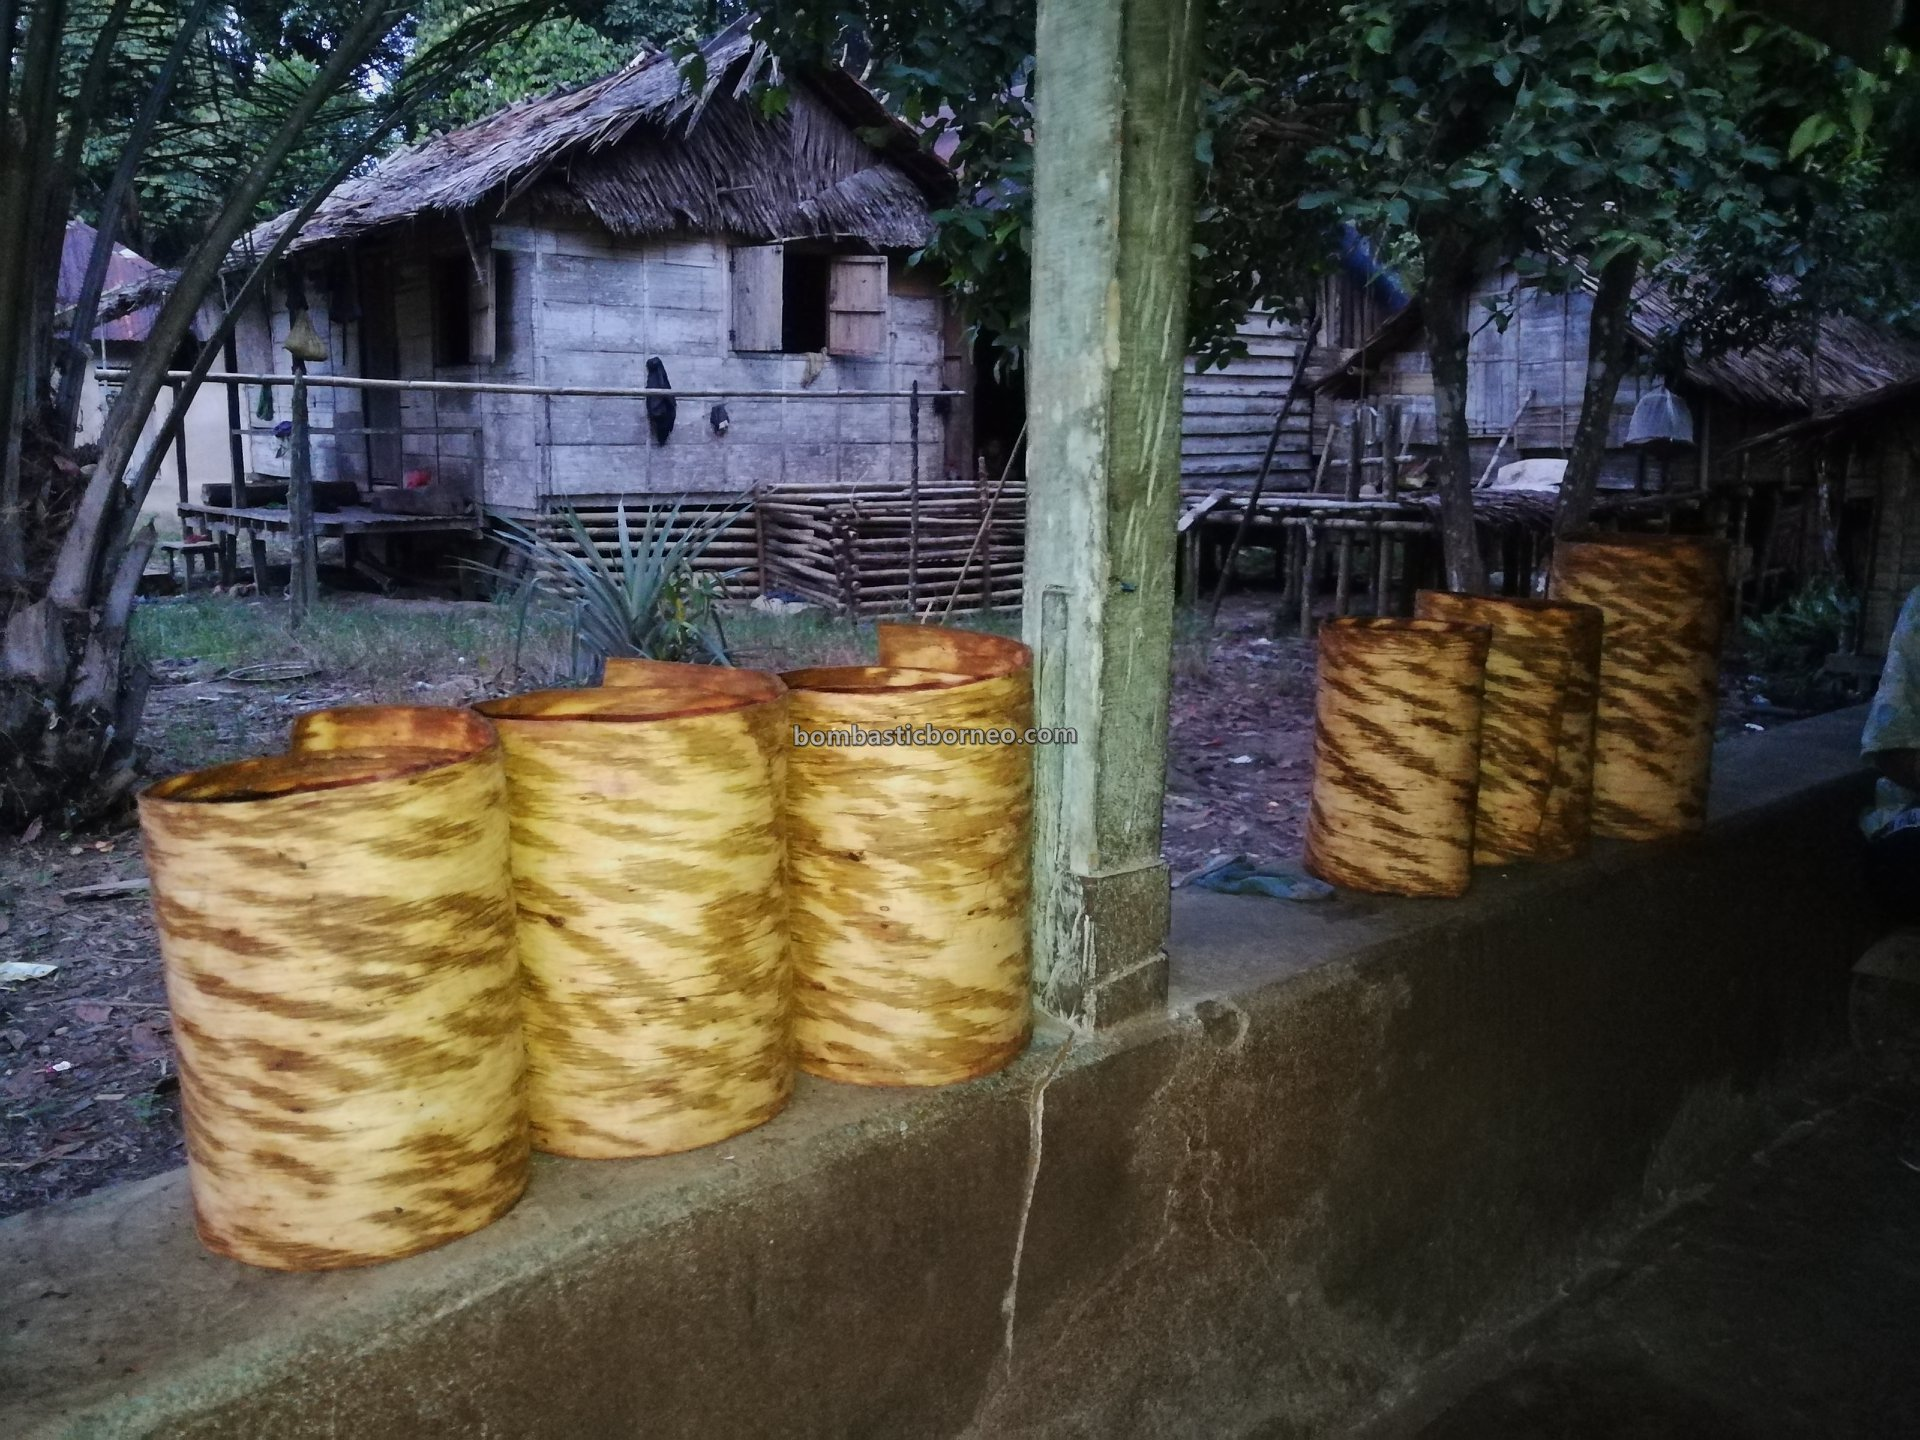 nature, authentic, traditional, Indonesia, Kalimantan Barat, Desa Bengkawan, Tourism, travel guide, tree bark, tribal, native, village, Borneo, 婆罗洲原住民部落, 印尼西加里曼丹